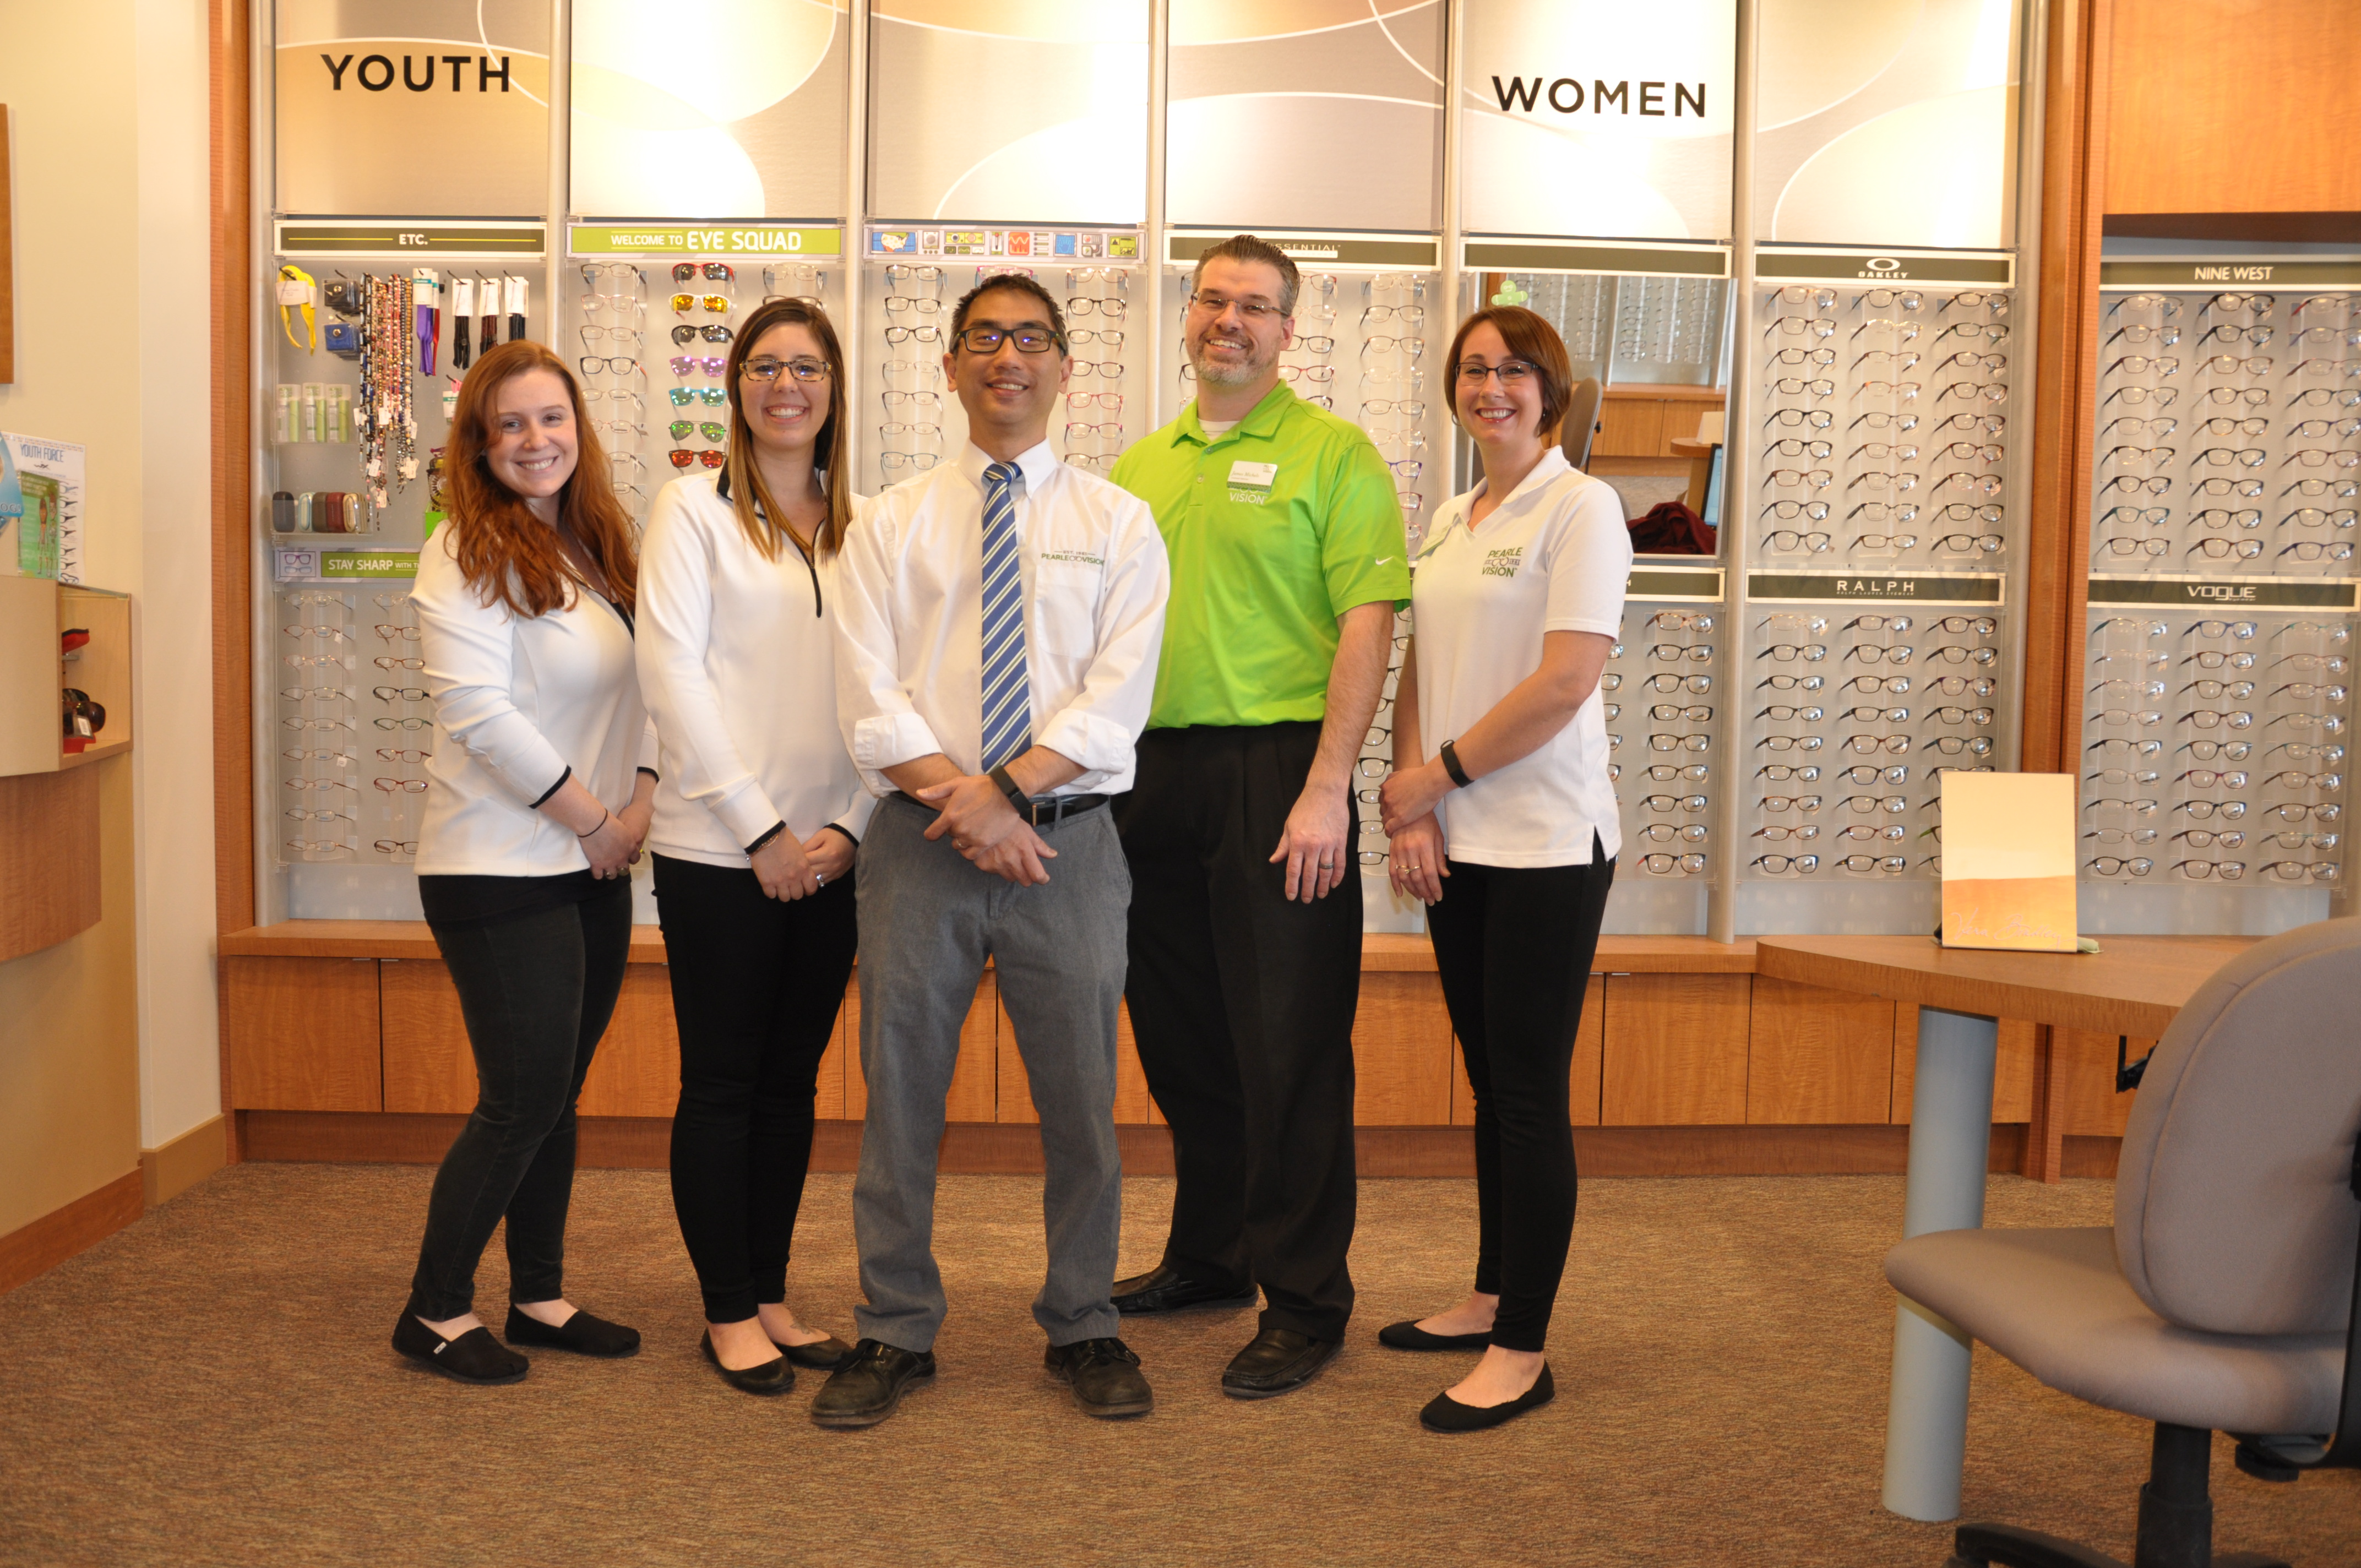 Pearle Vision Eye Care Center in Canandaigua, NY | Pearle Vision